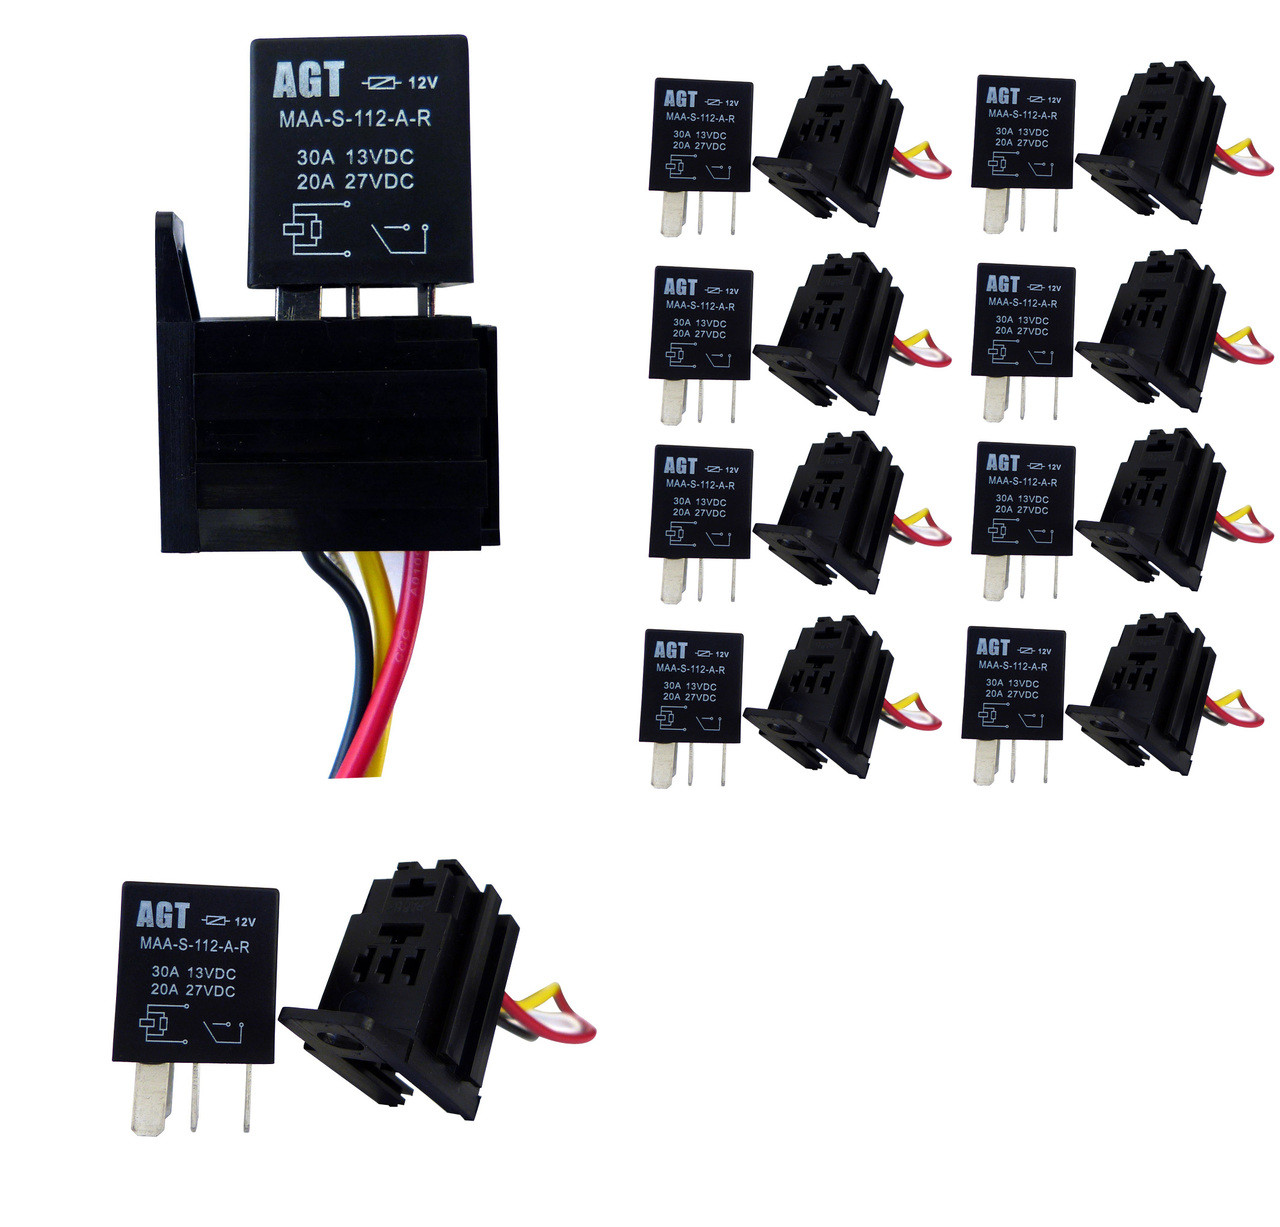 4 pin 30a 12v spst micro relay 10 pack genssi rh genssi com Fuel Pump Relay Wiring Diagram Fan Relay Wiring Diagram